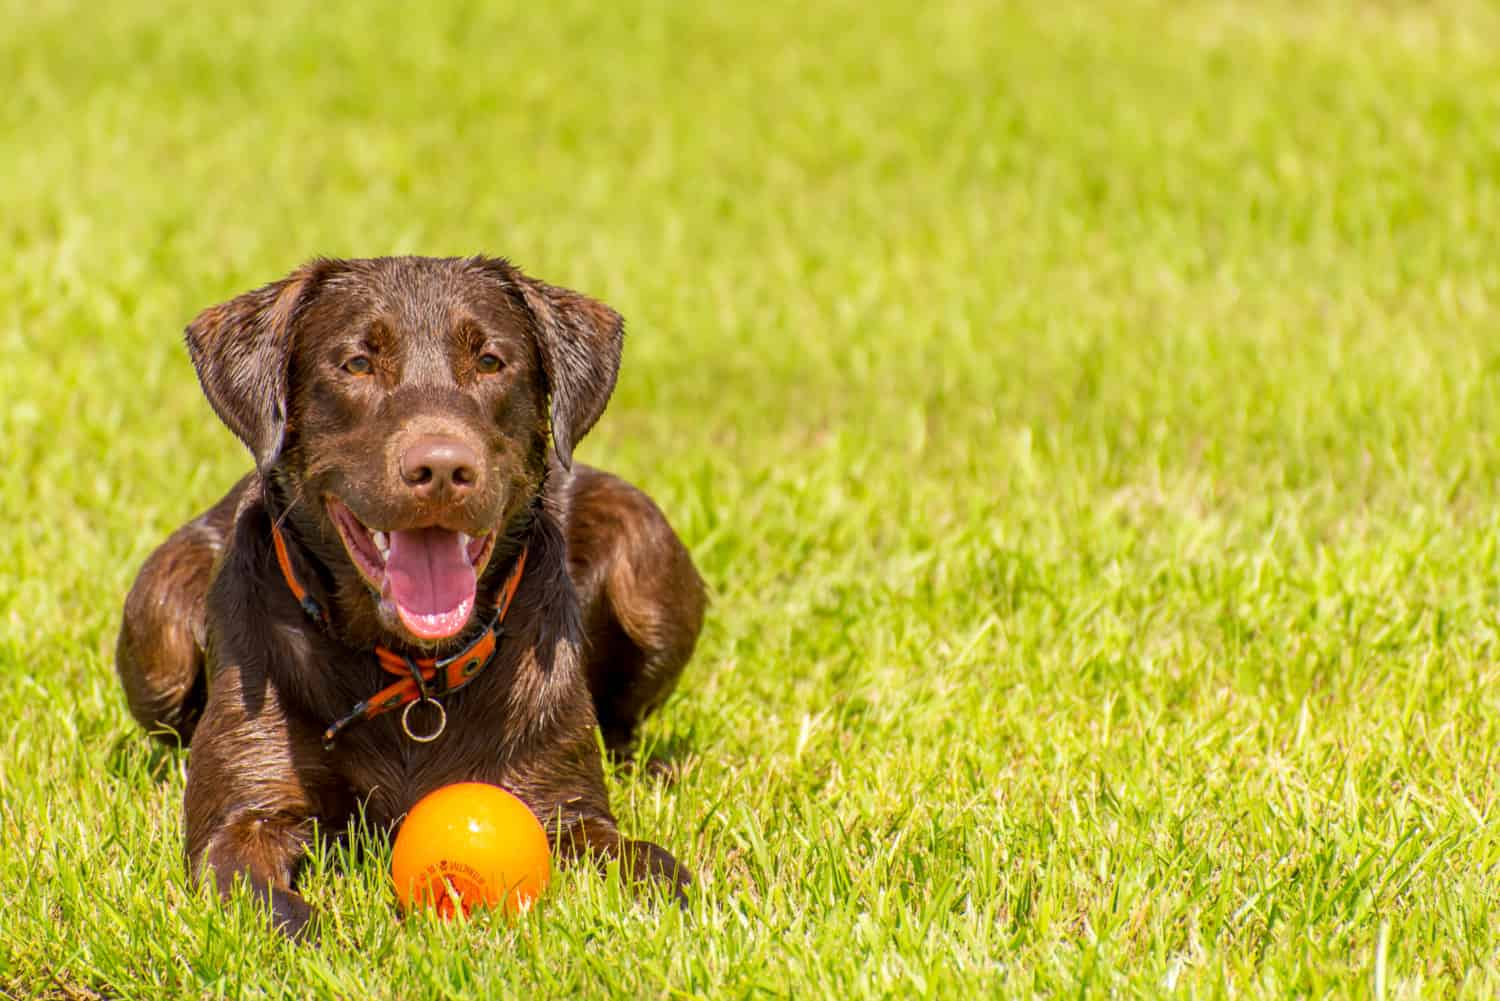 Chocolate Labrador dog lying in the wet grass with an orange ball